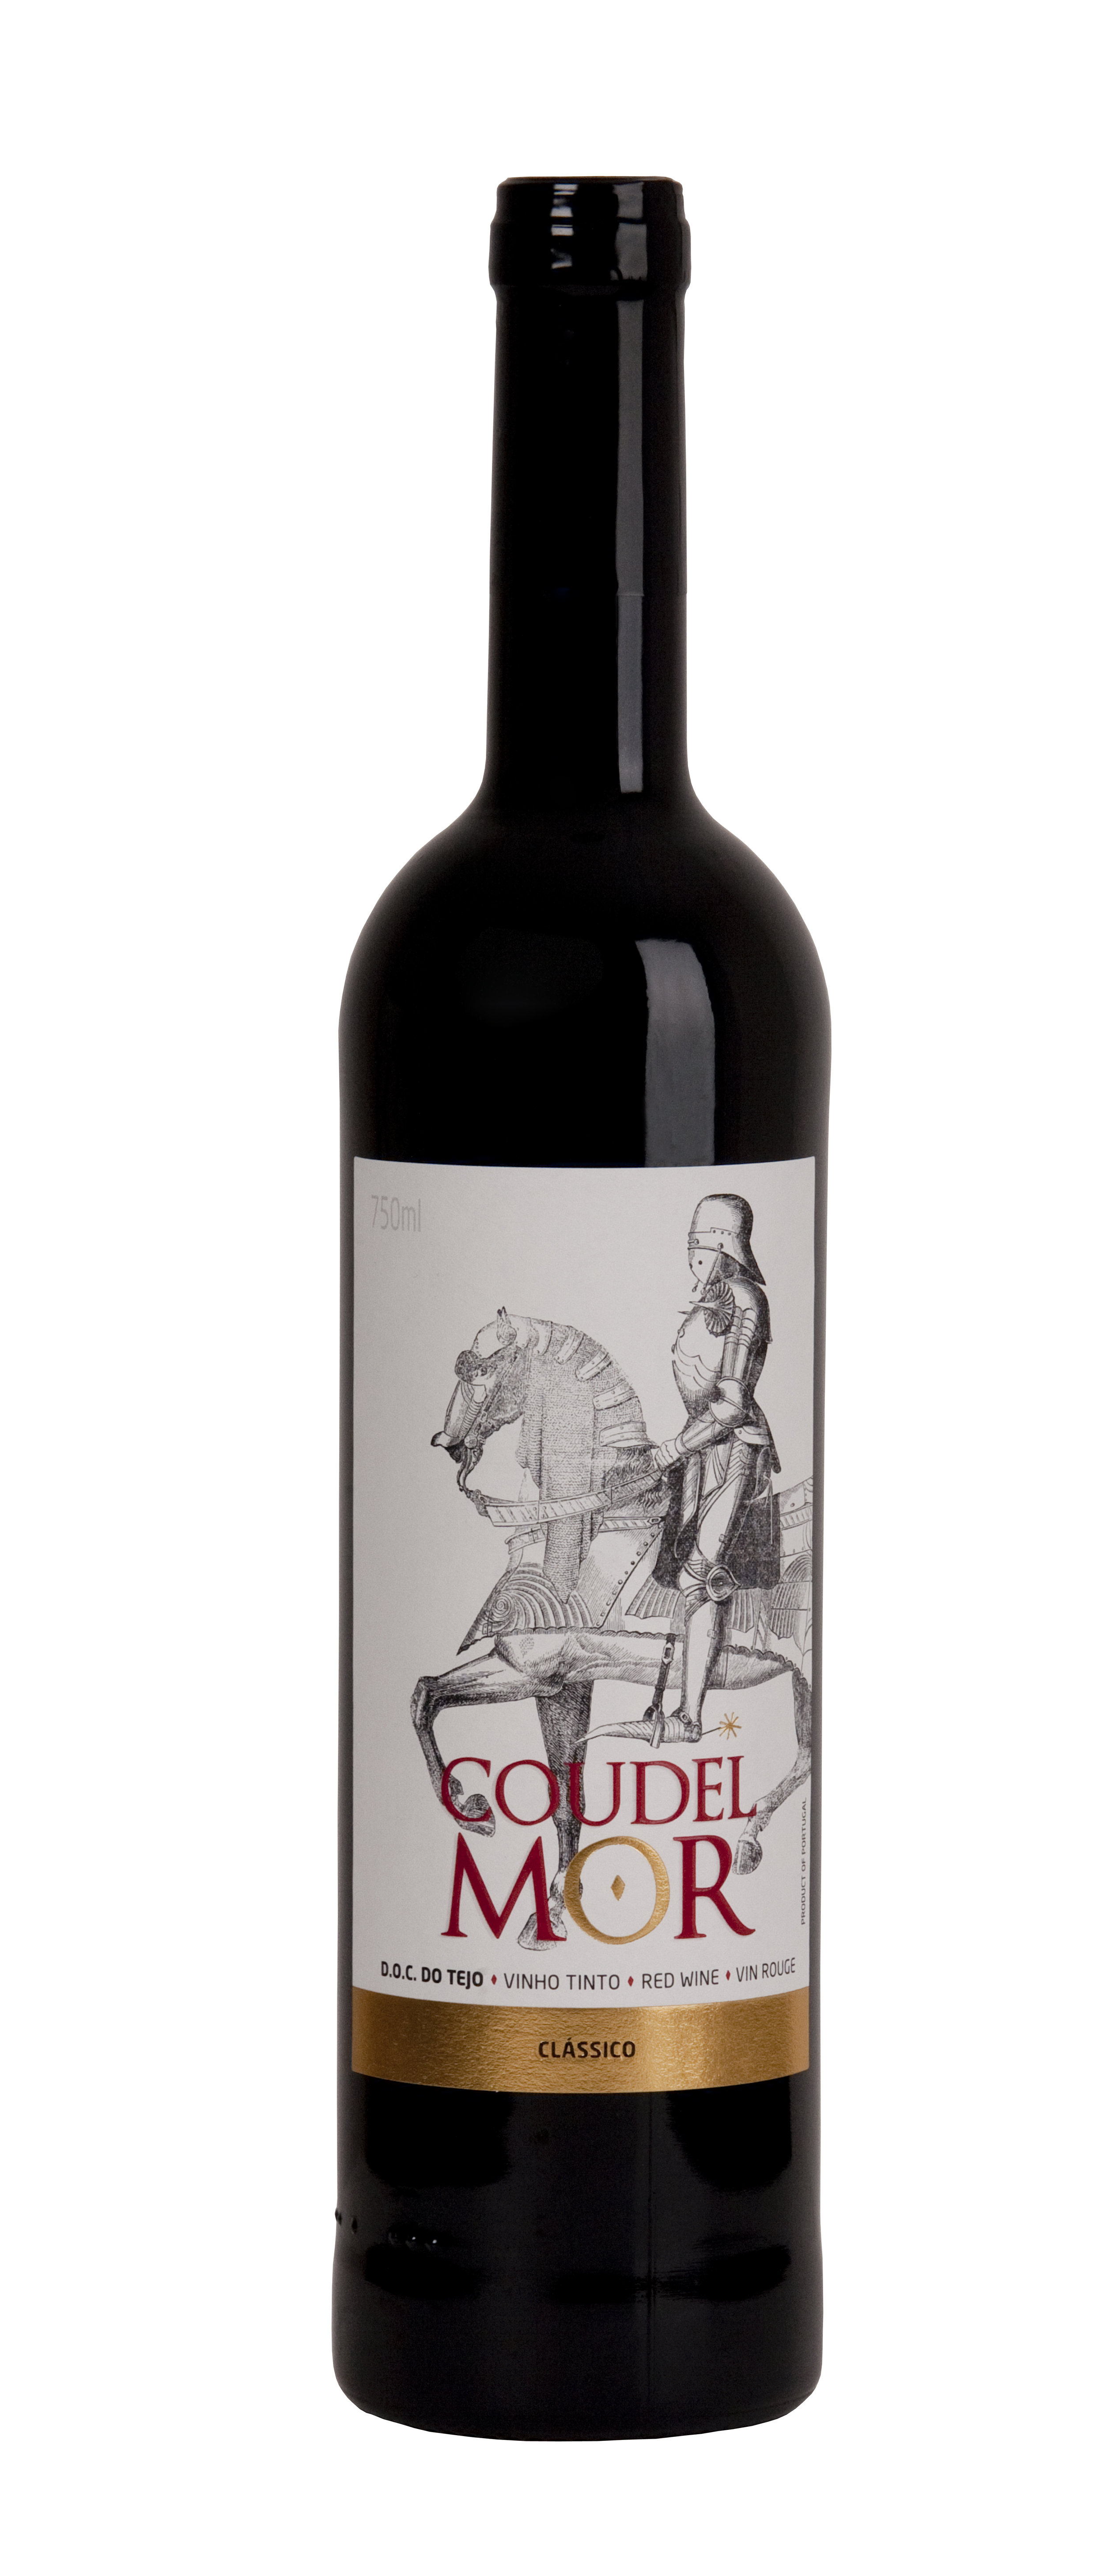 COUDEL MOR CLASSIC RED